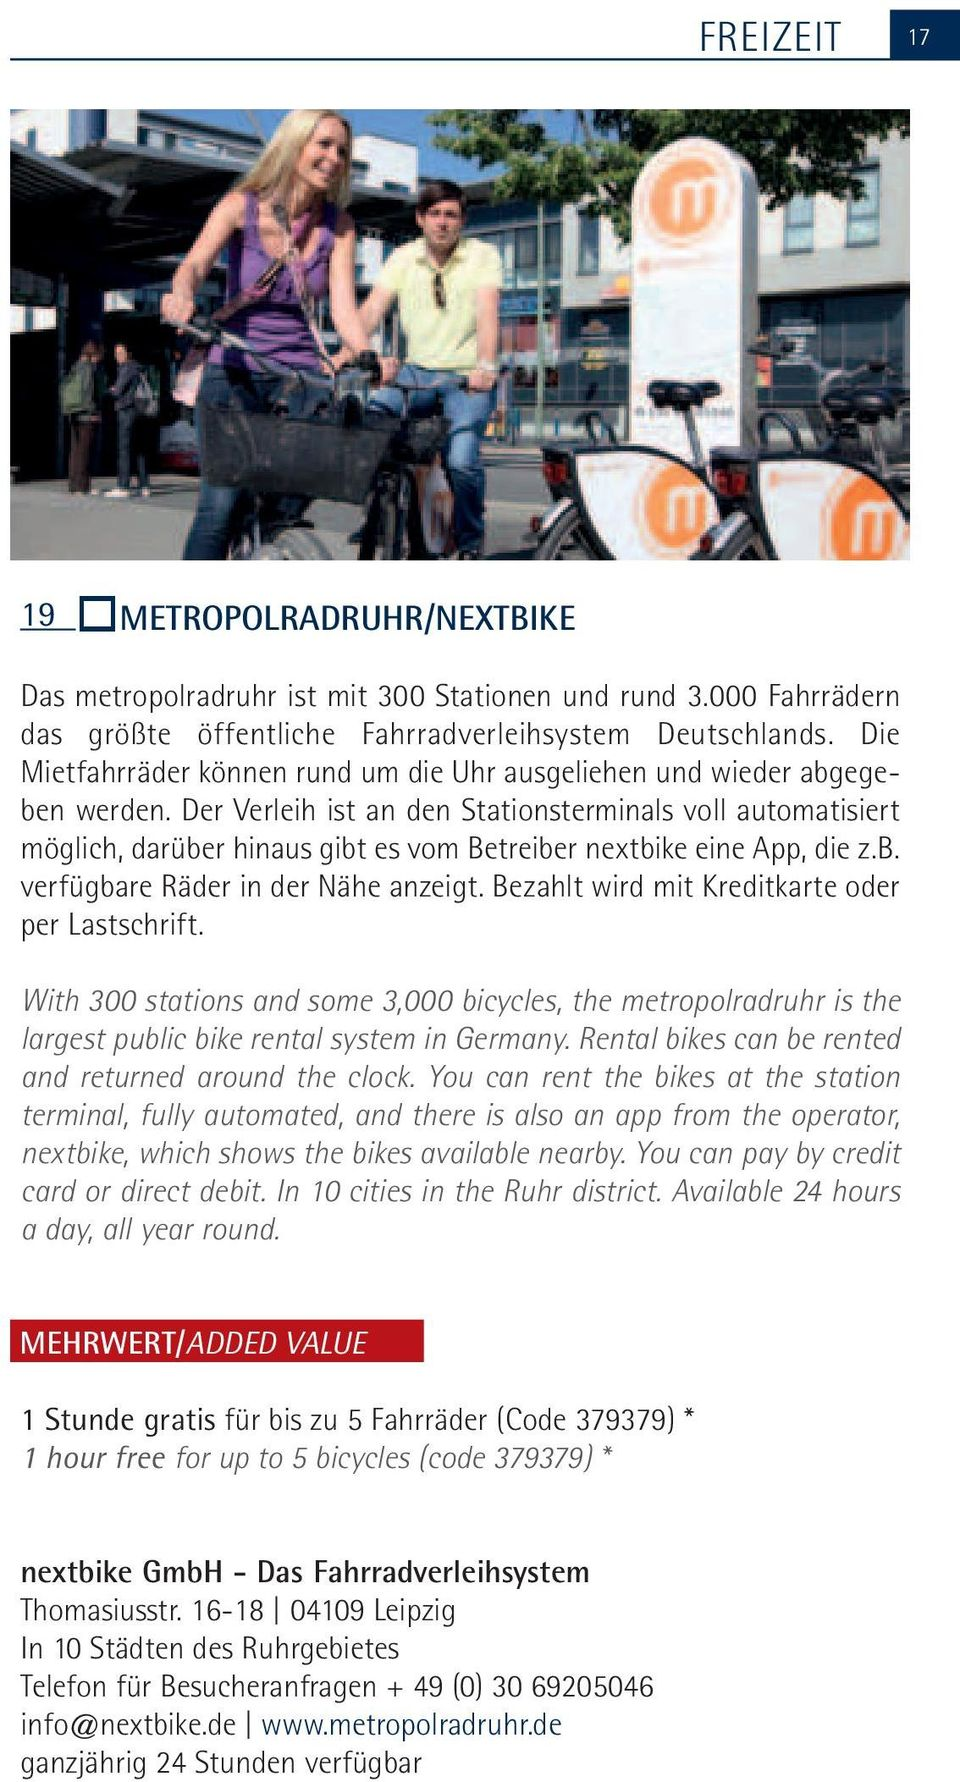 300 stations and som 3,000 bicycls, th mtropolradruhr is th largst public bik rntal systm in Gmany Rntal biks can b rntd and rturnd around th clock You can rnt th biks at th station tminal, fully